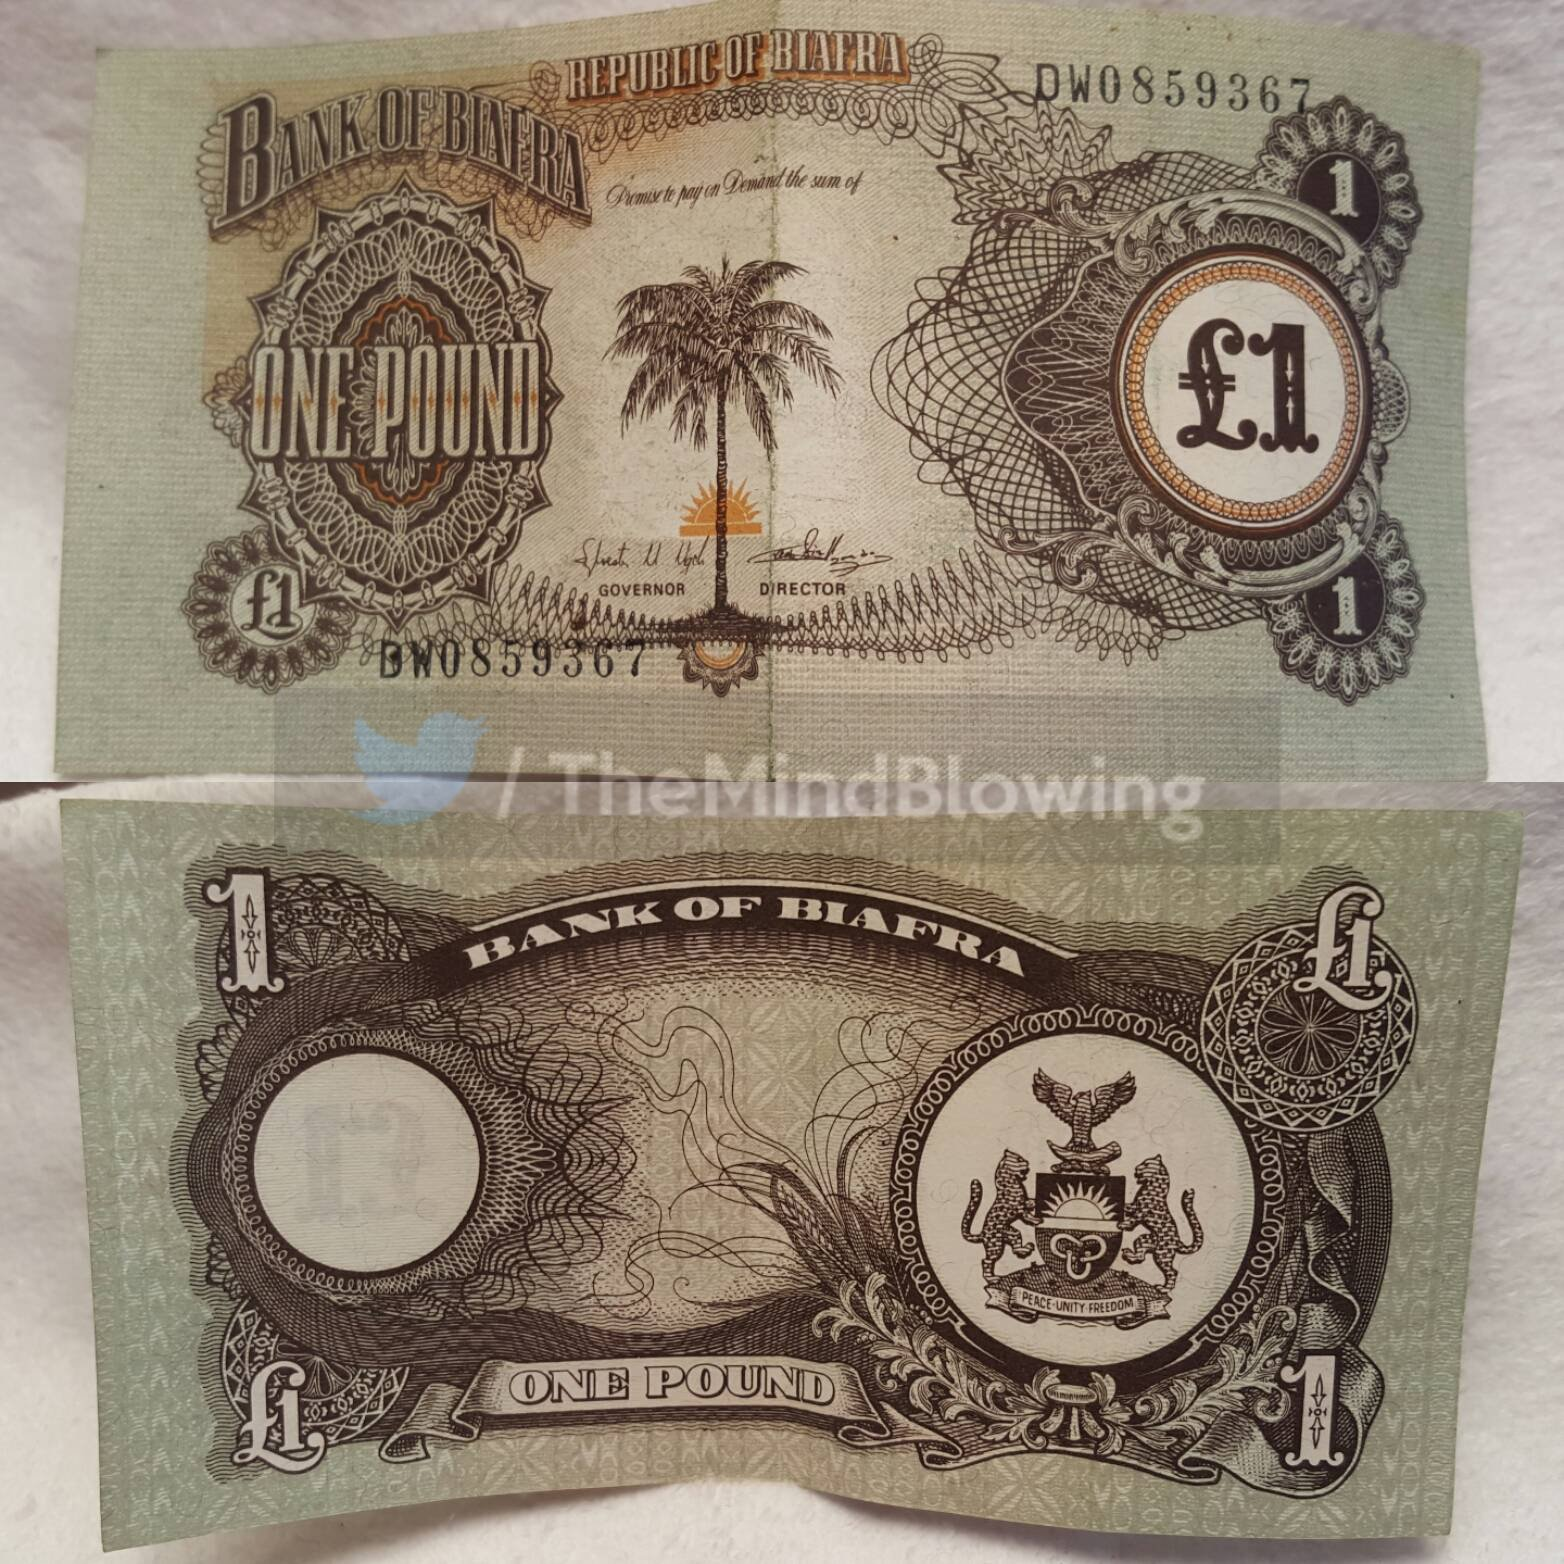 Currency from Biafra, a country which no longer exists https://t.co/nkyHlsXkVw